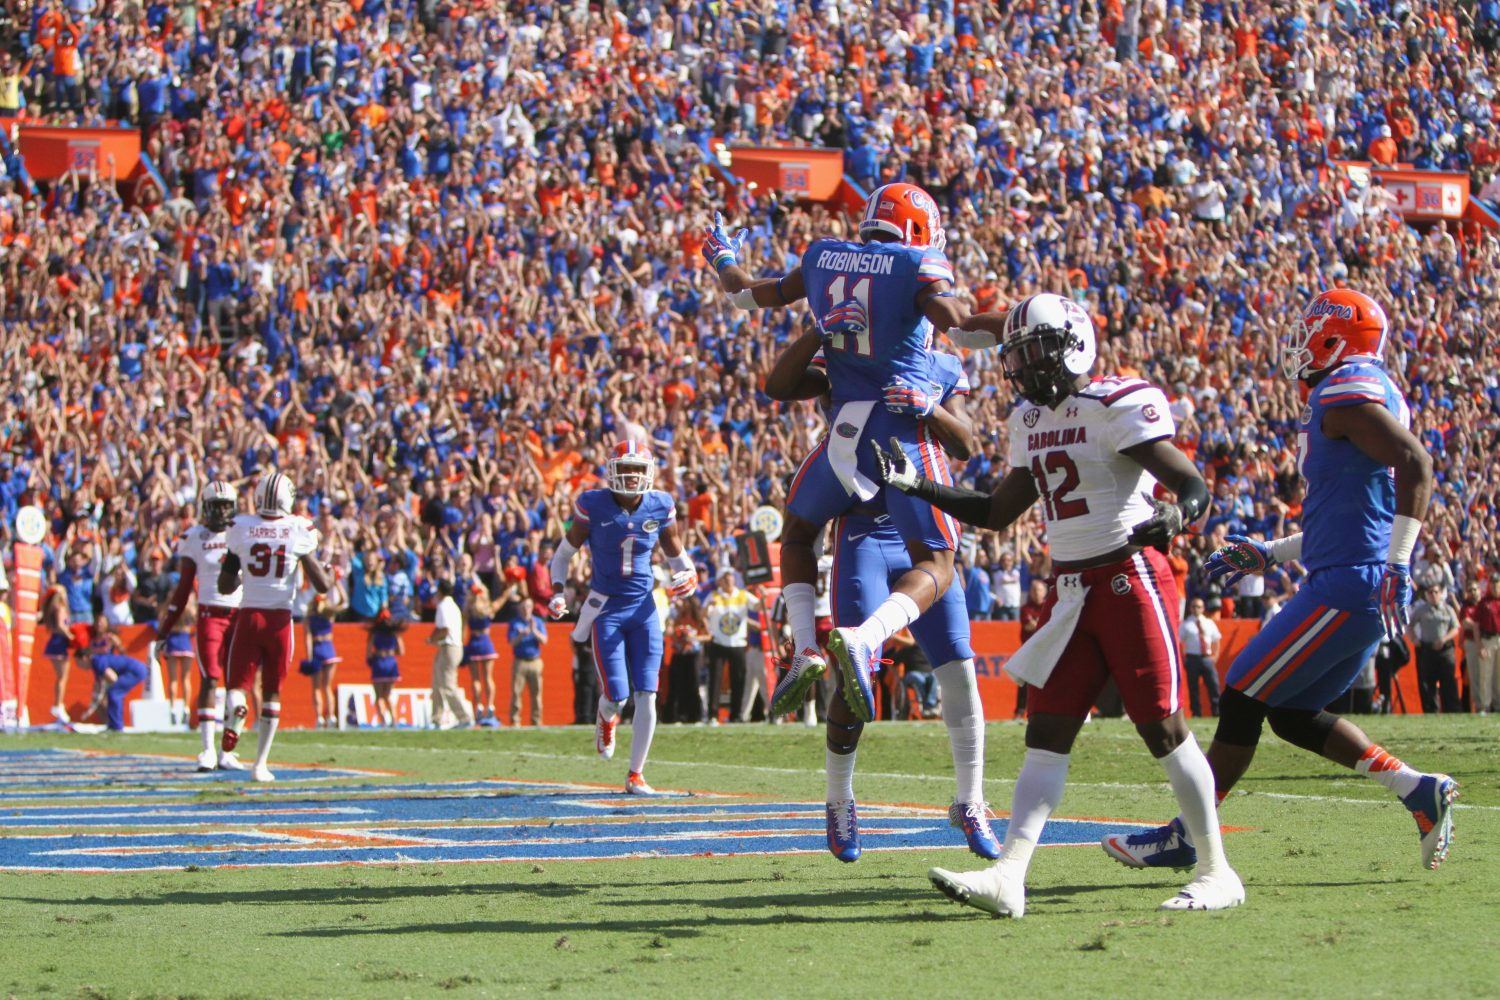 Florida receiver Demarcus Robinson celebrates with his teammates after catching an 11-yard pass from Harris for a touchdown late in the second quarter.